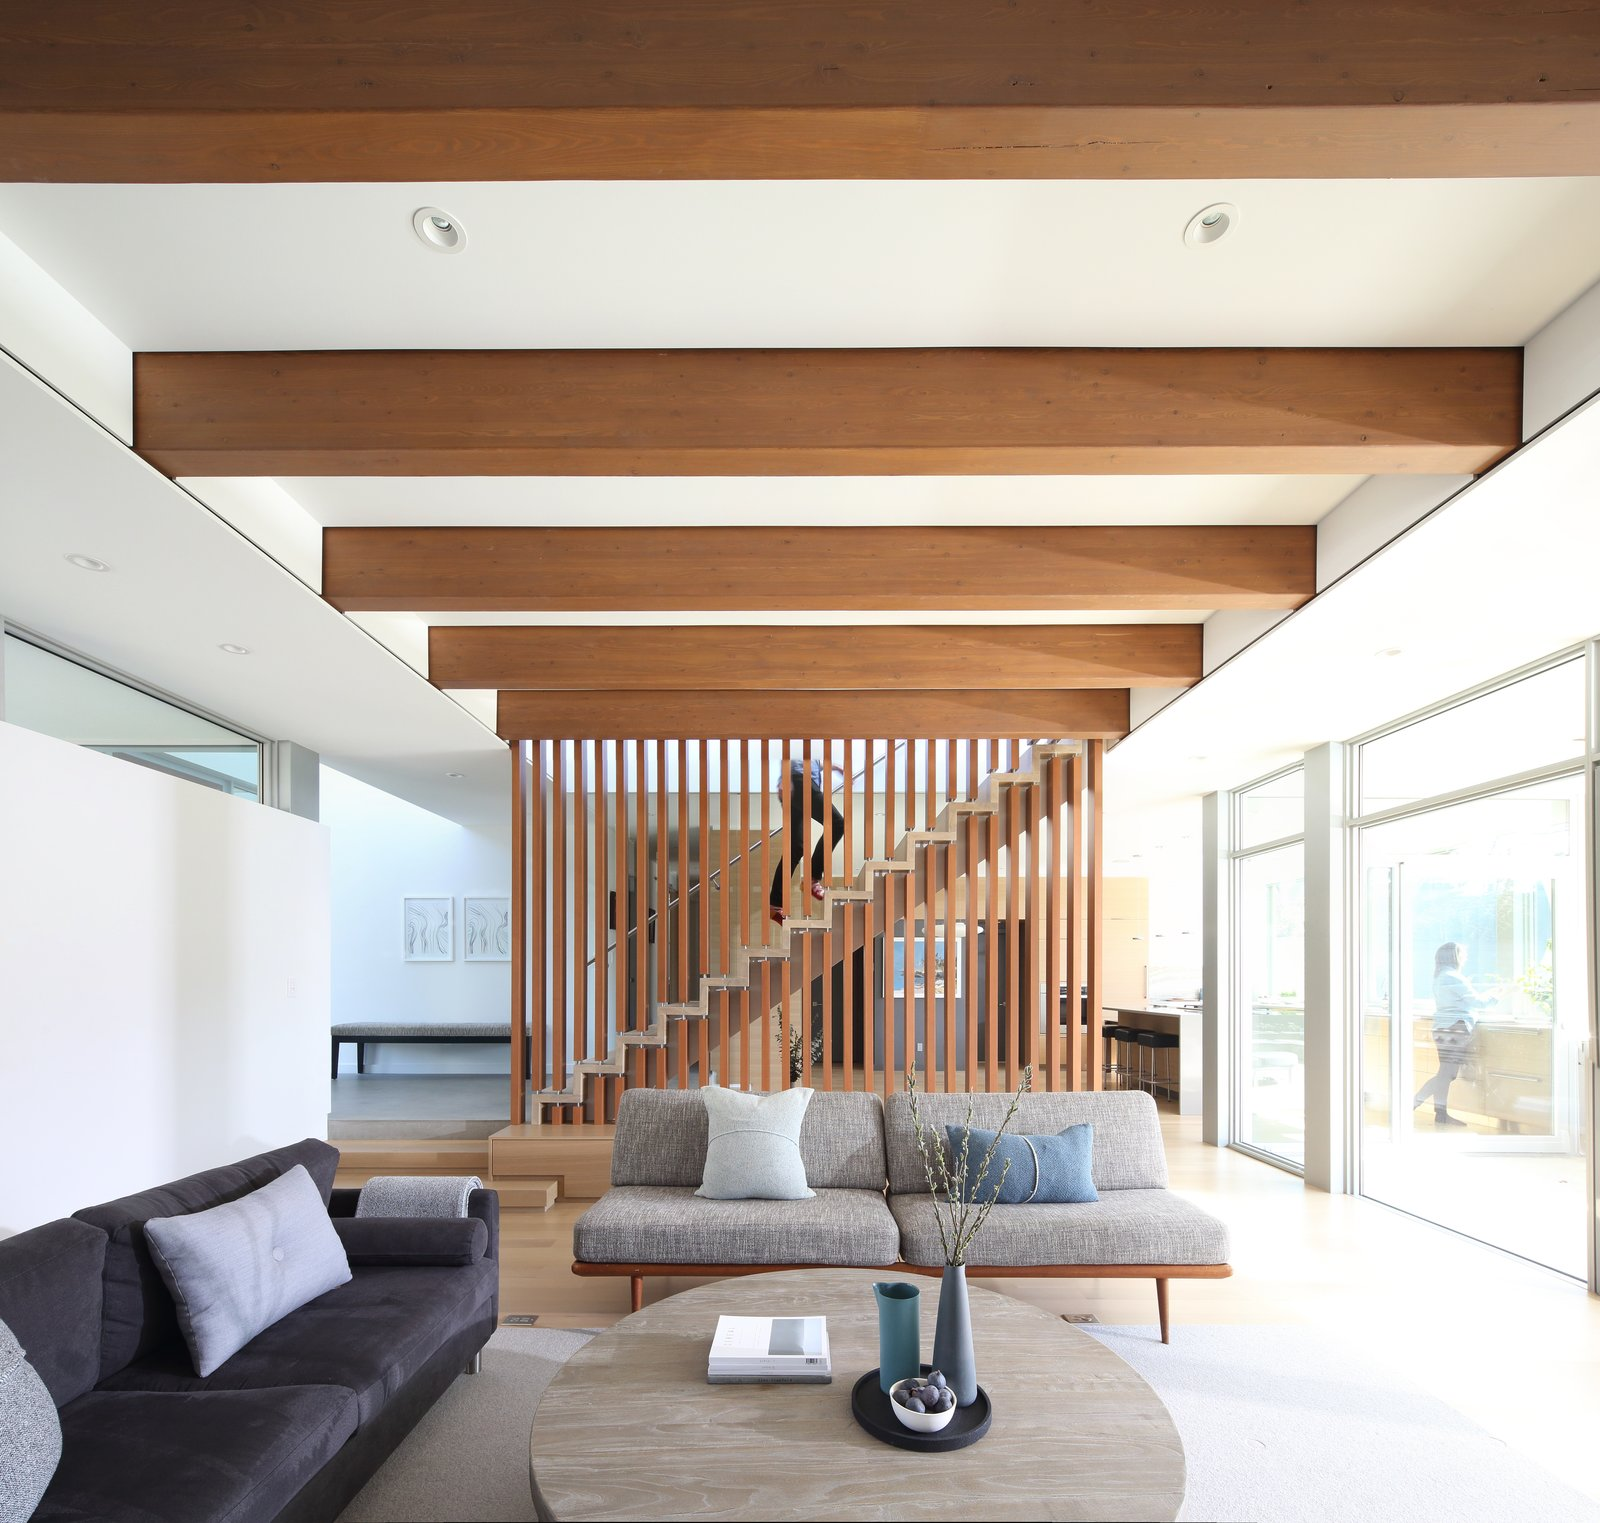 Living Room, Sofa, Coffee Tables, Ceiling Lighting, and Light Hardwood Floor Living room  The Edge House